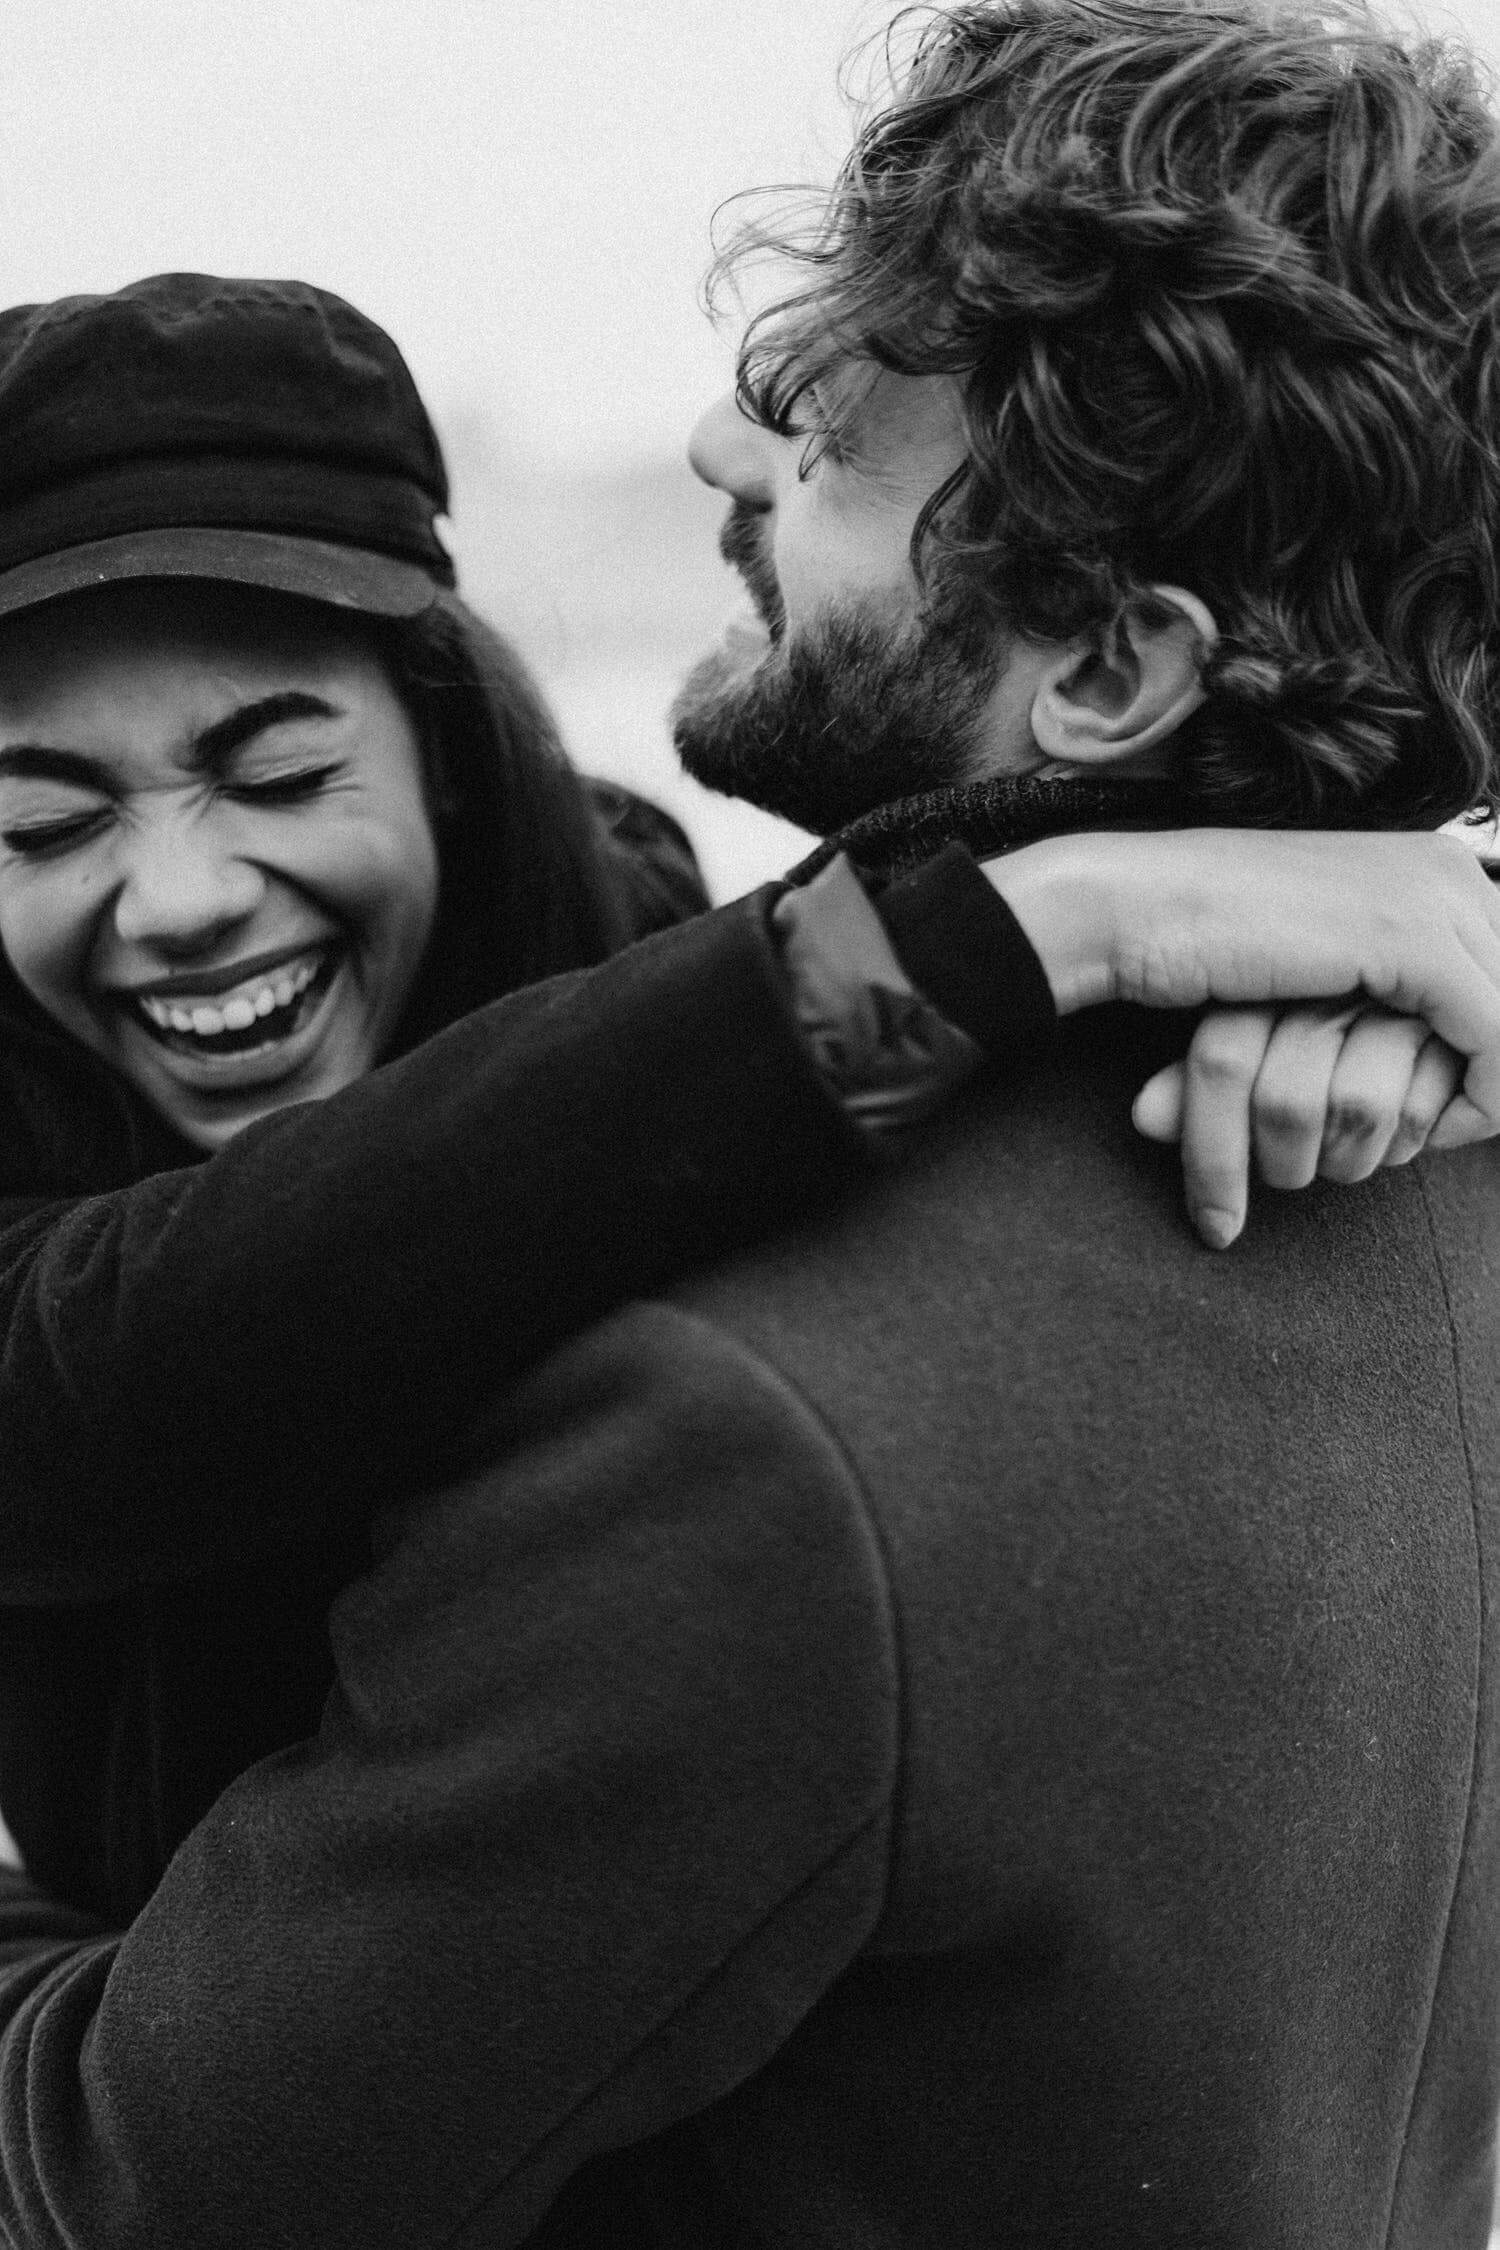 Introduce mindfulness in your relationship